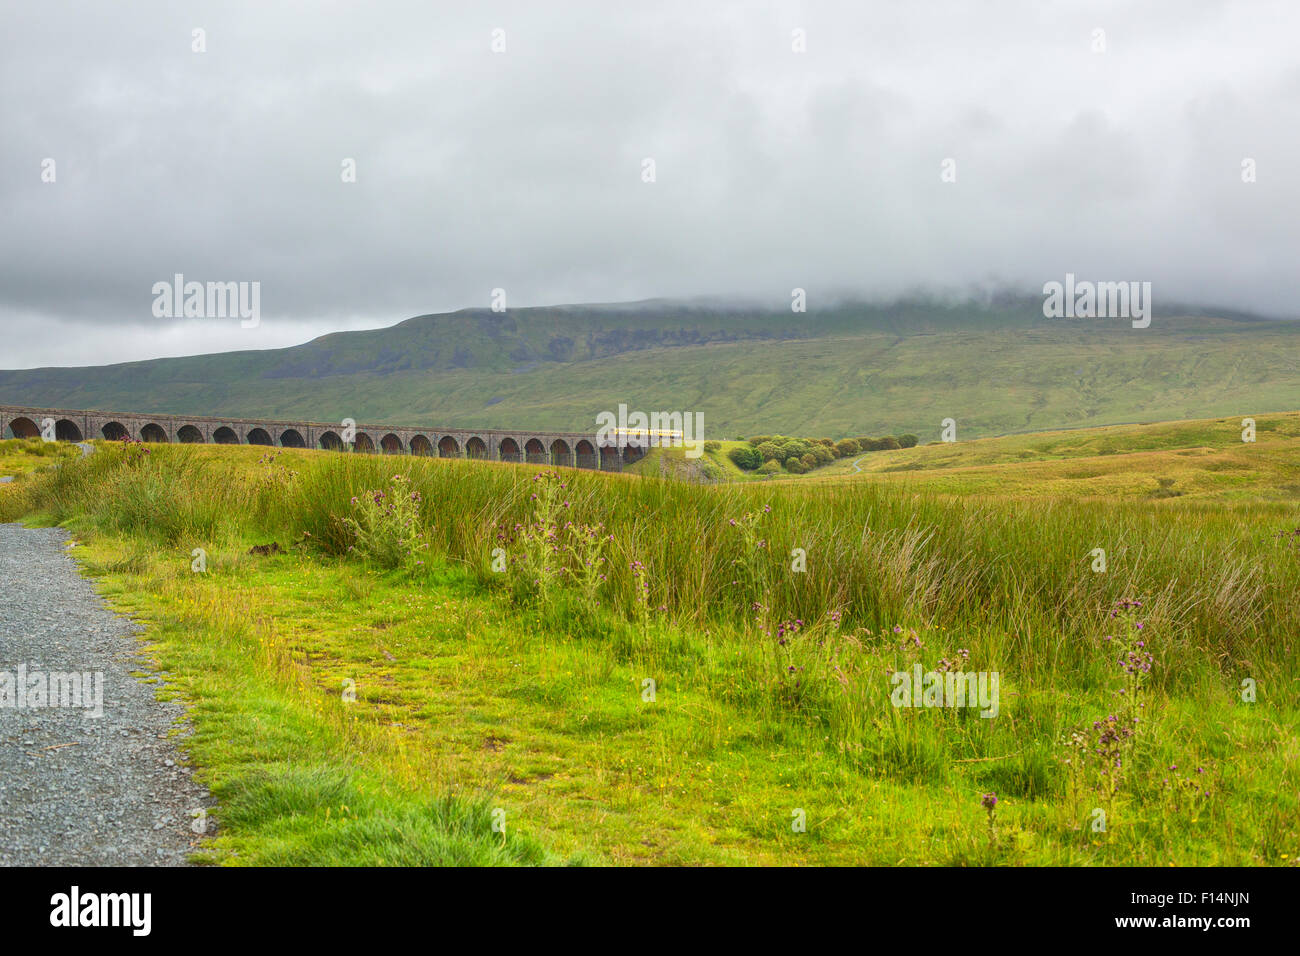 Famous Ribblehead Viaduct in Yorkshire Dales National Park with train - Stock Image